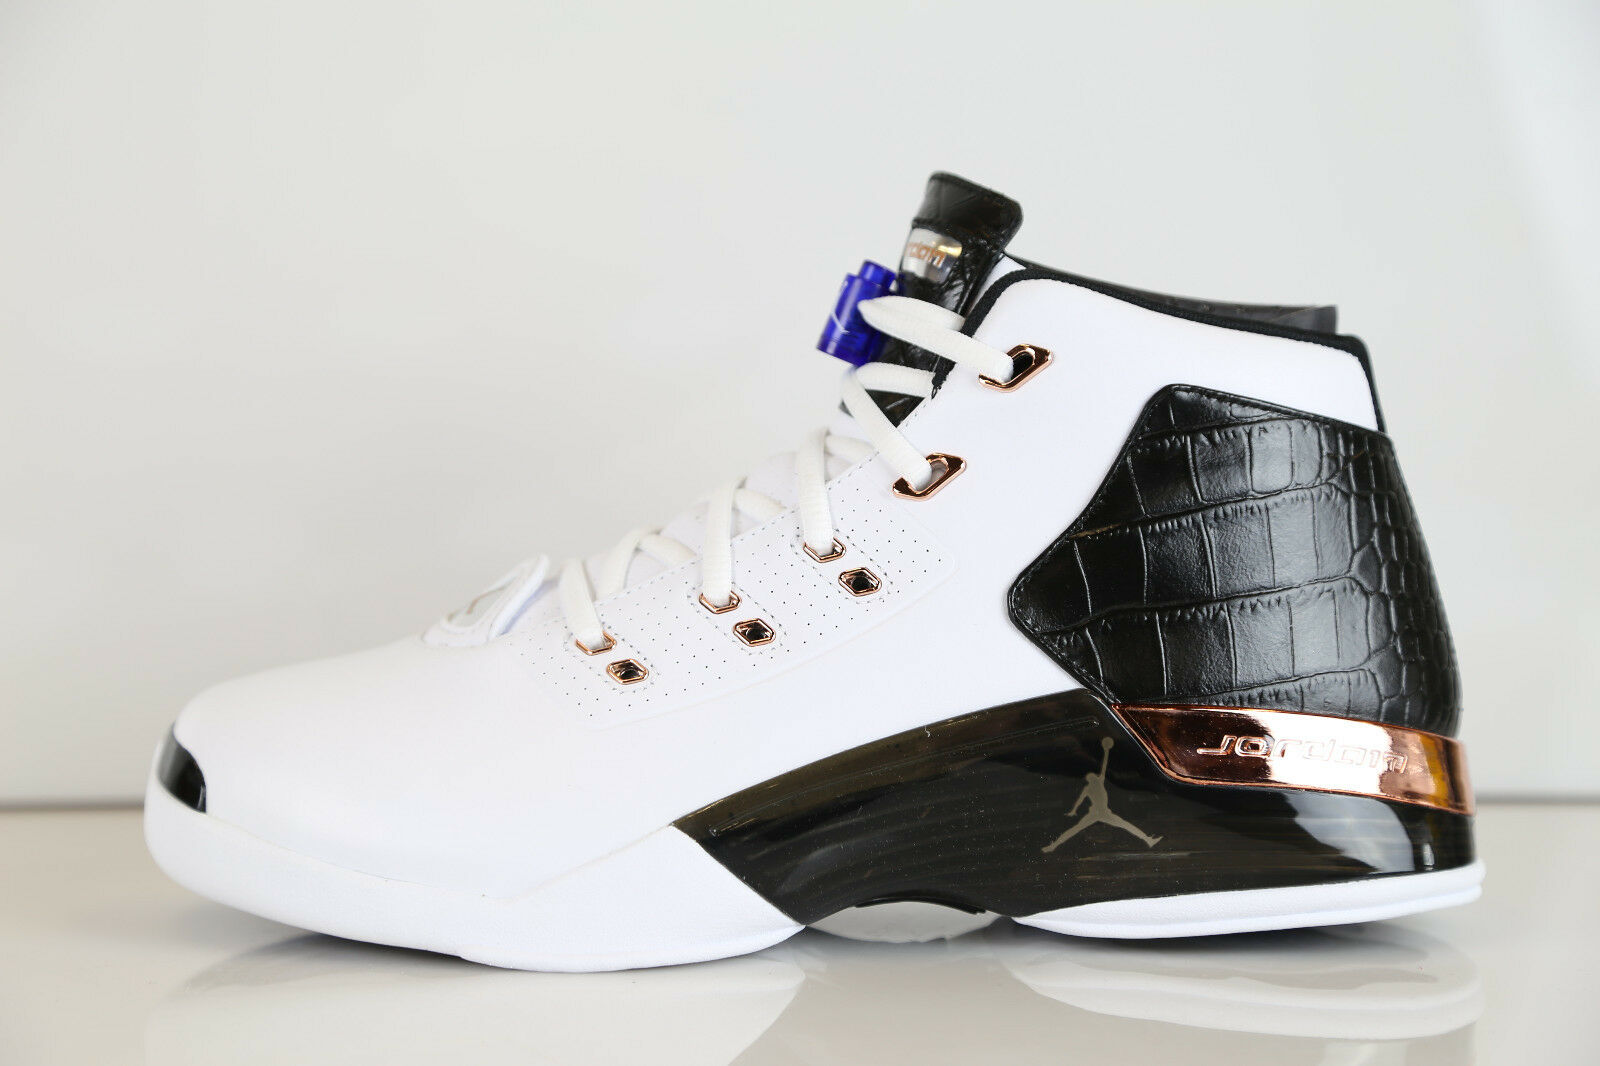 Air Jordan Retro 17 + Copper  832816-122 7.5-12 white black 11 1